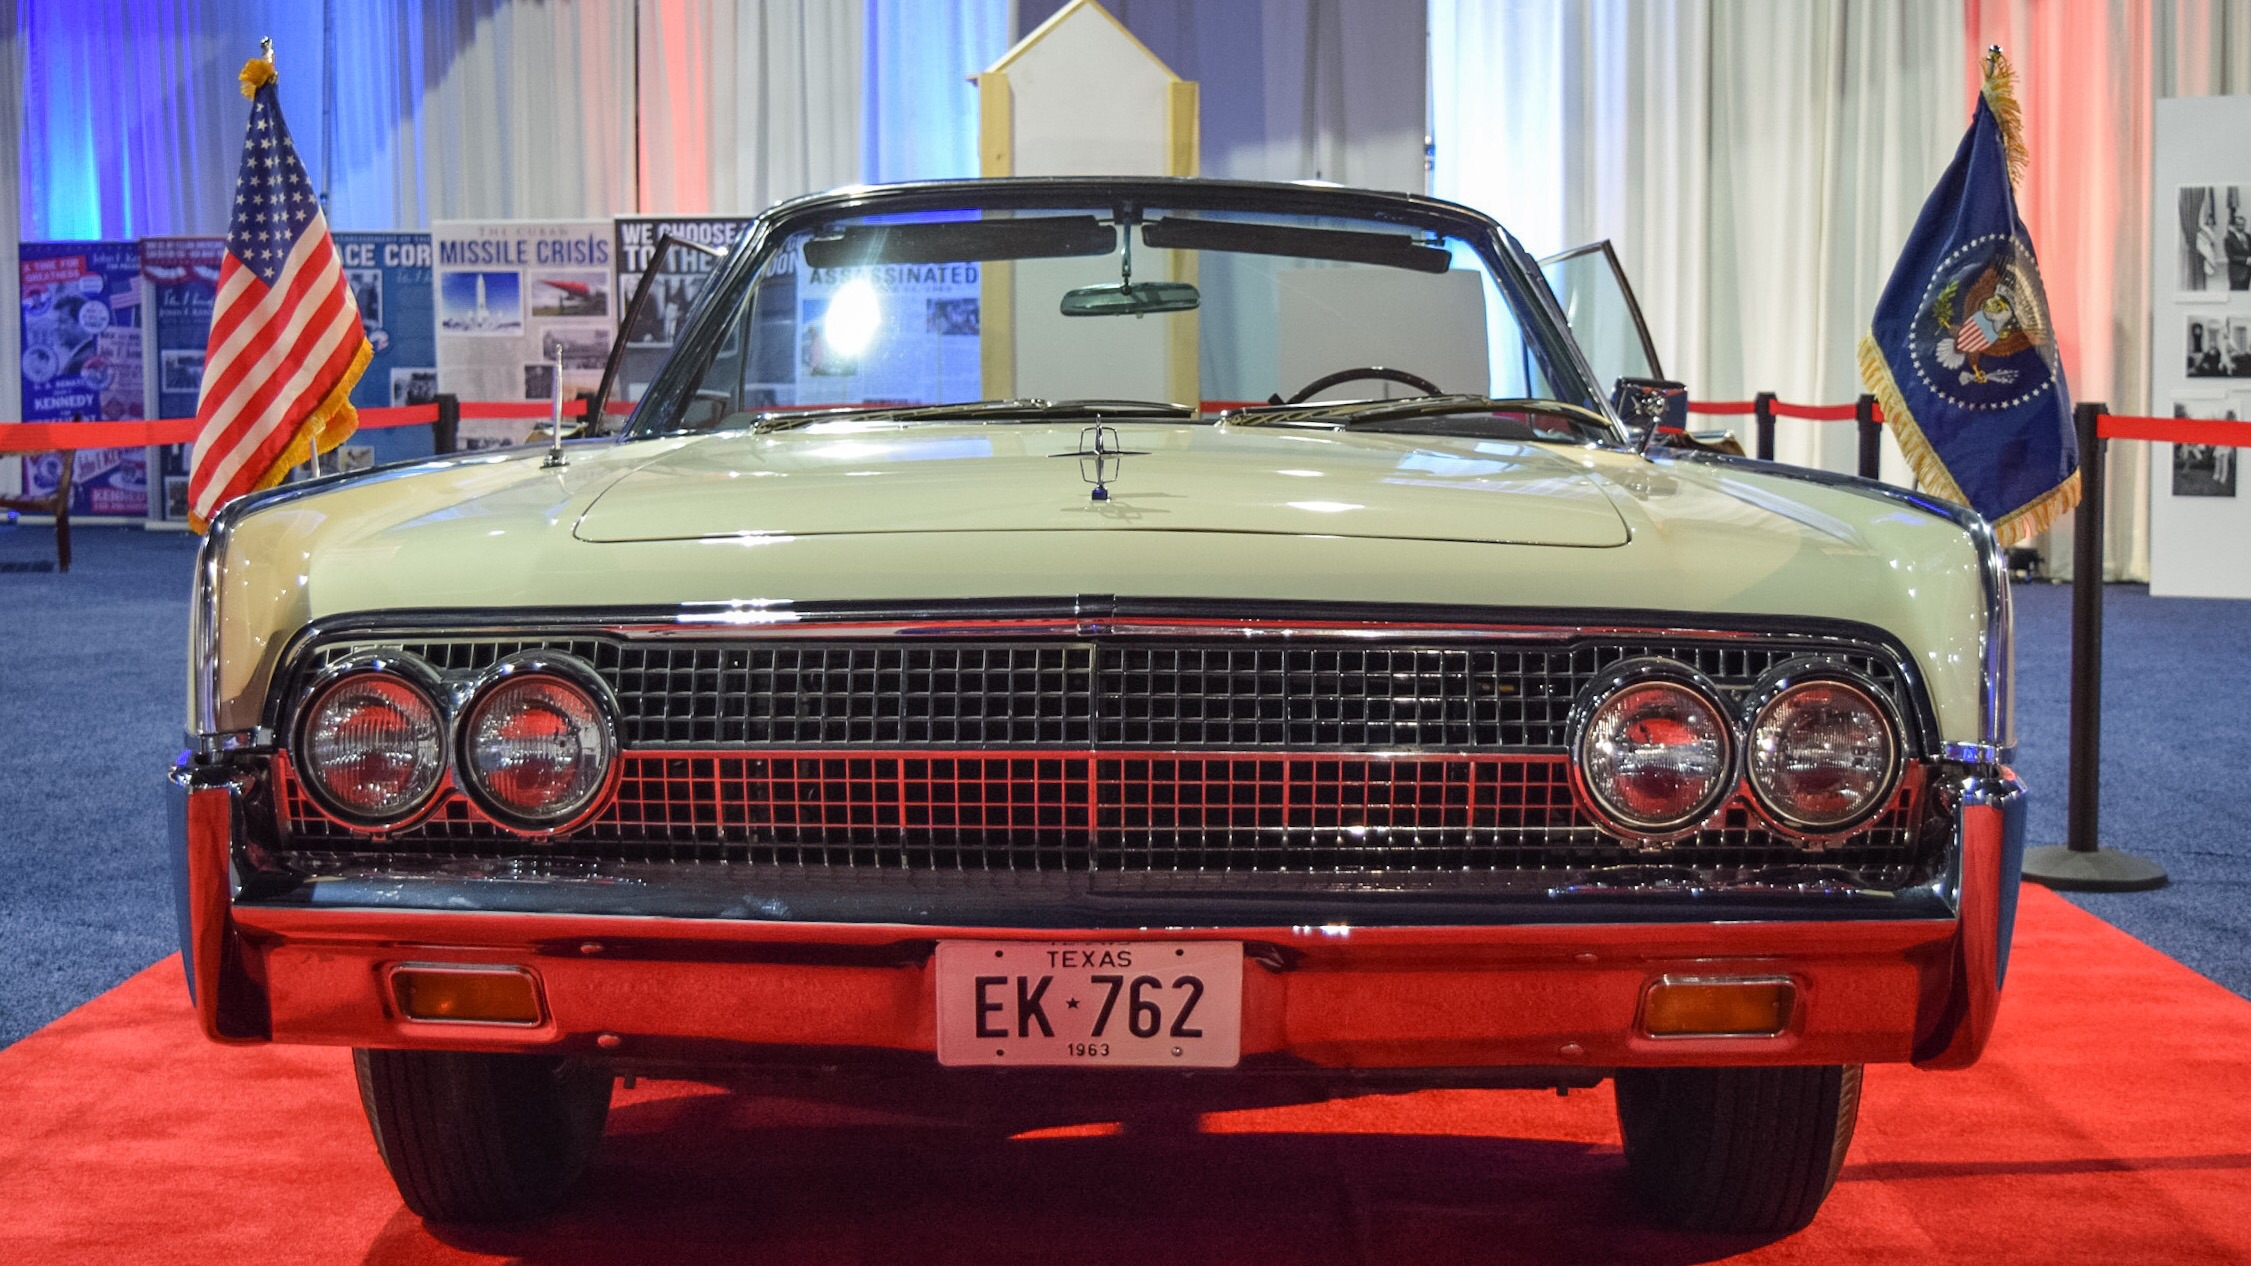 """""""The last care JFK rode in safely.""""  Politicalfest at the Pennsylvania Convention Center"""